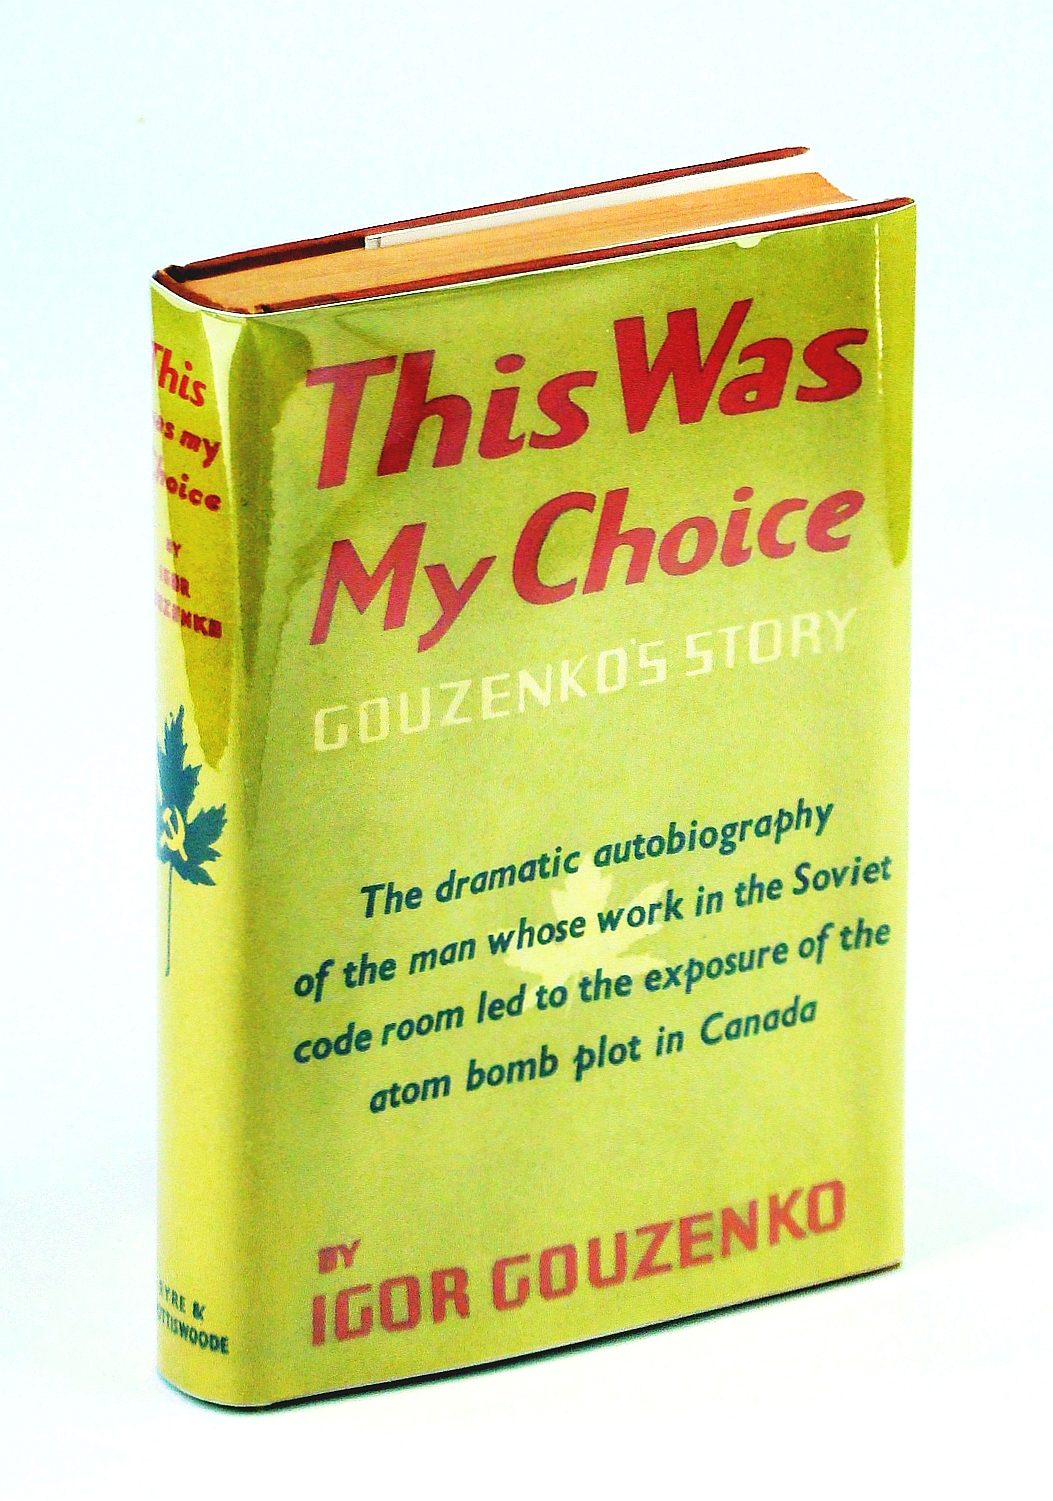 Image for This was my choice: Gouzenko's story